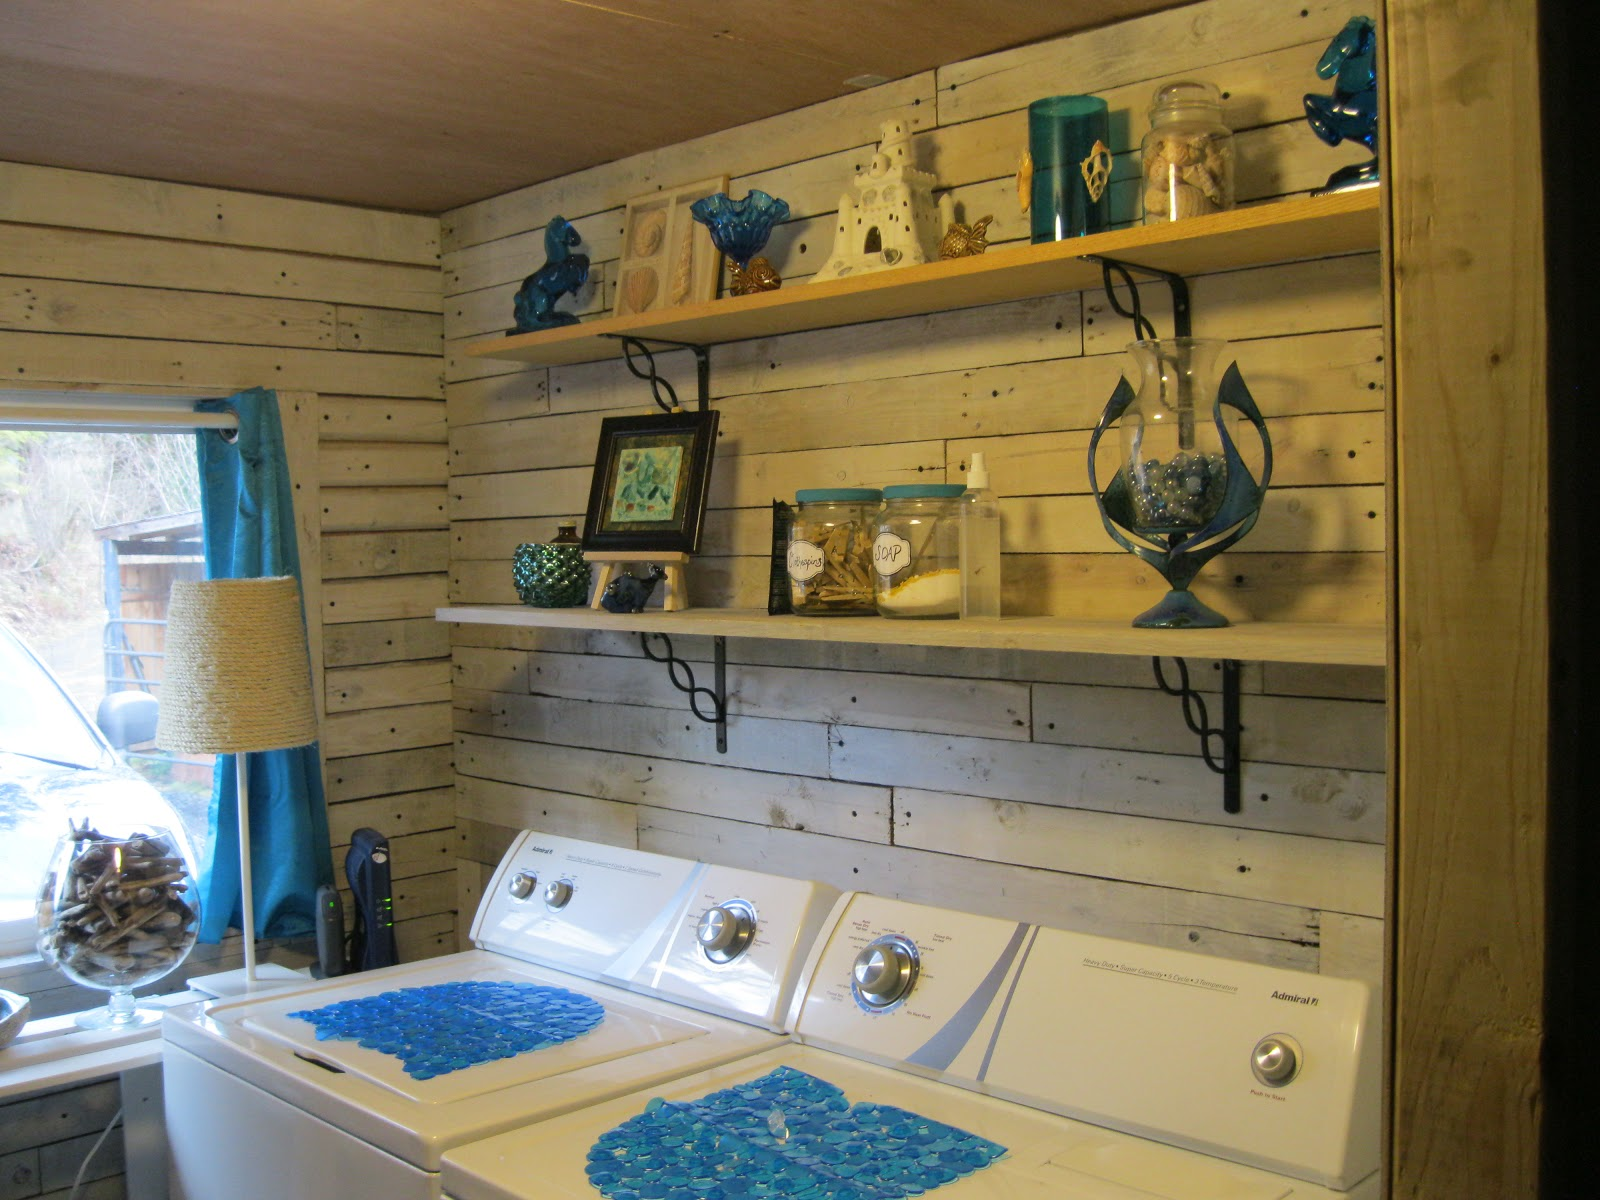 Laundry room makeover ideas for your mobile home How to do a home makeover